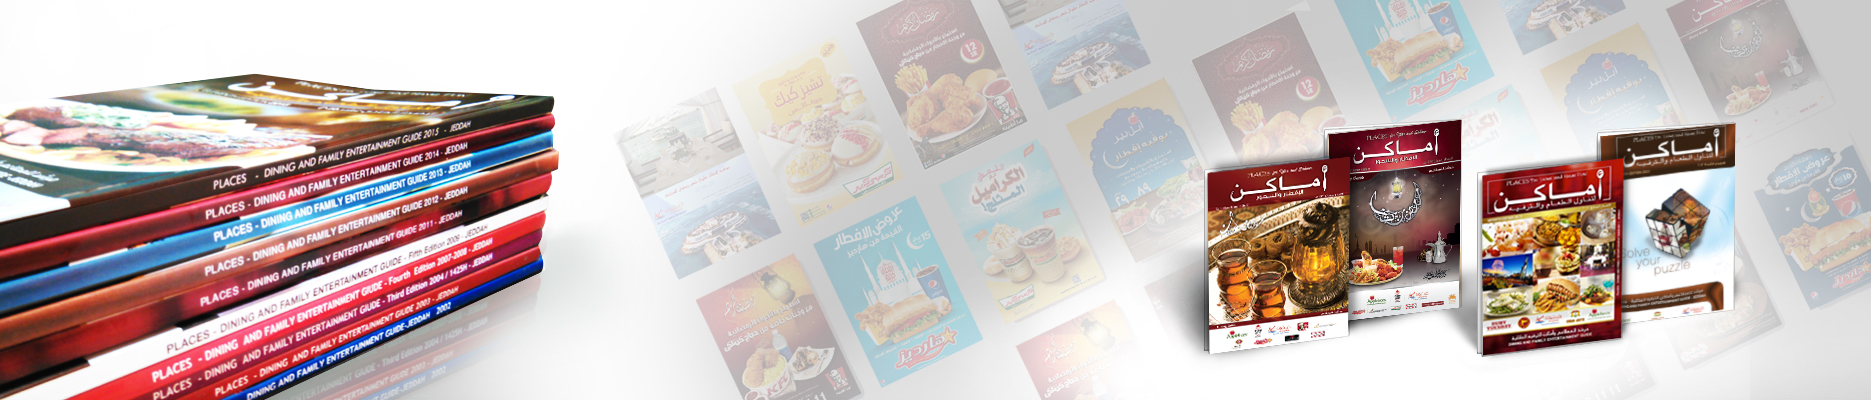 "Introduce the classic ""Places To Dine & Have Fun"" guide in Saudi Arabia – Publishing since 8 years"